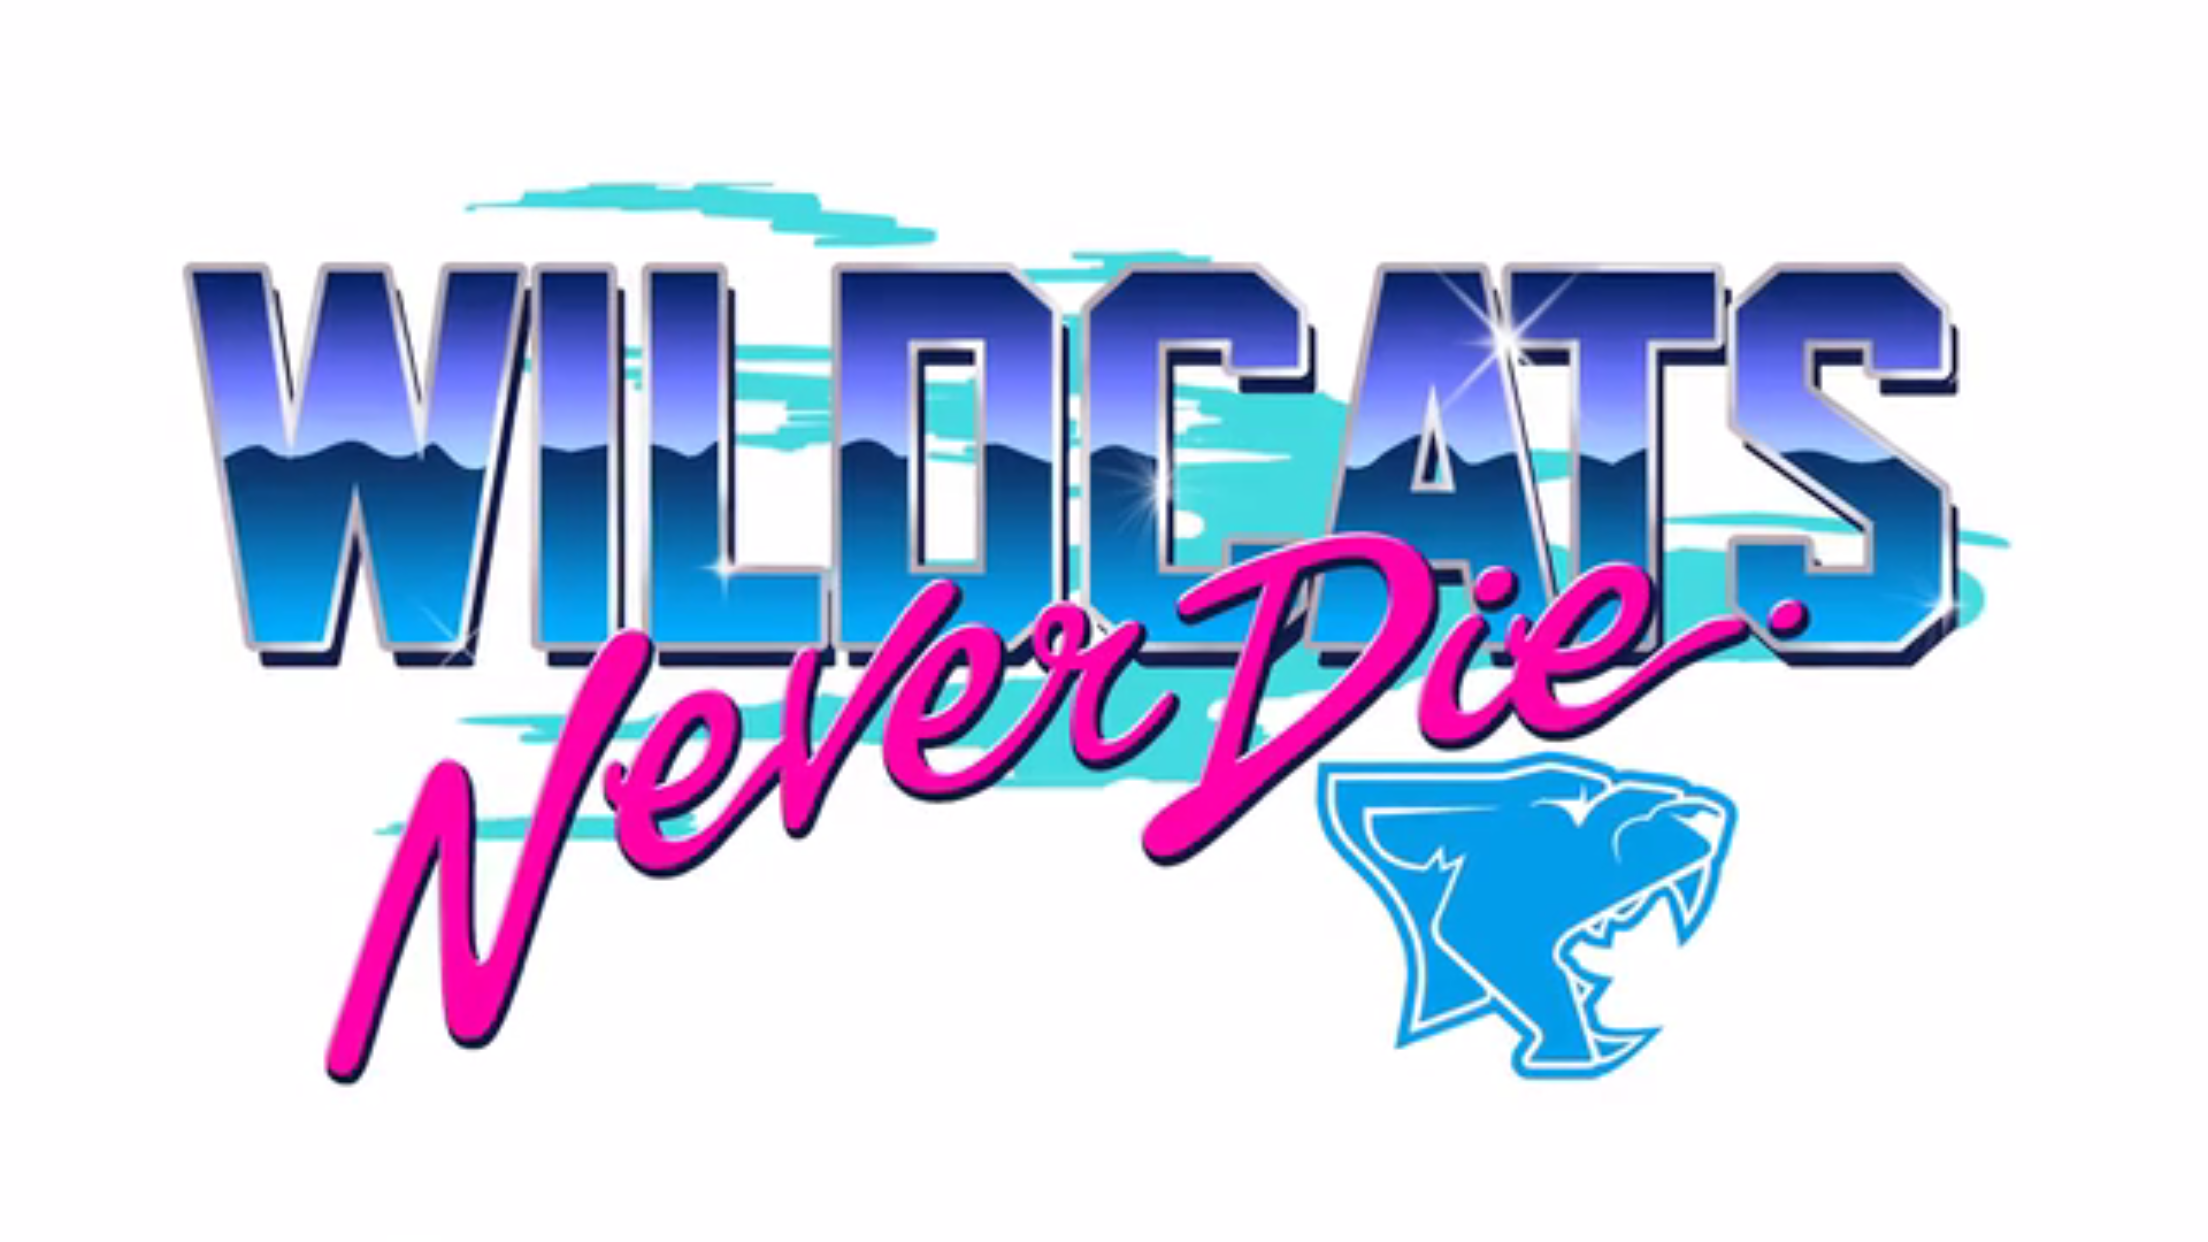 'Wildcats Never Die' – UK Premiere